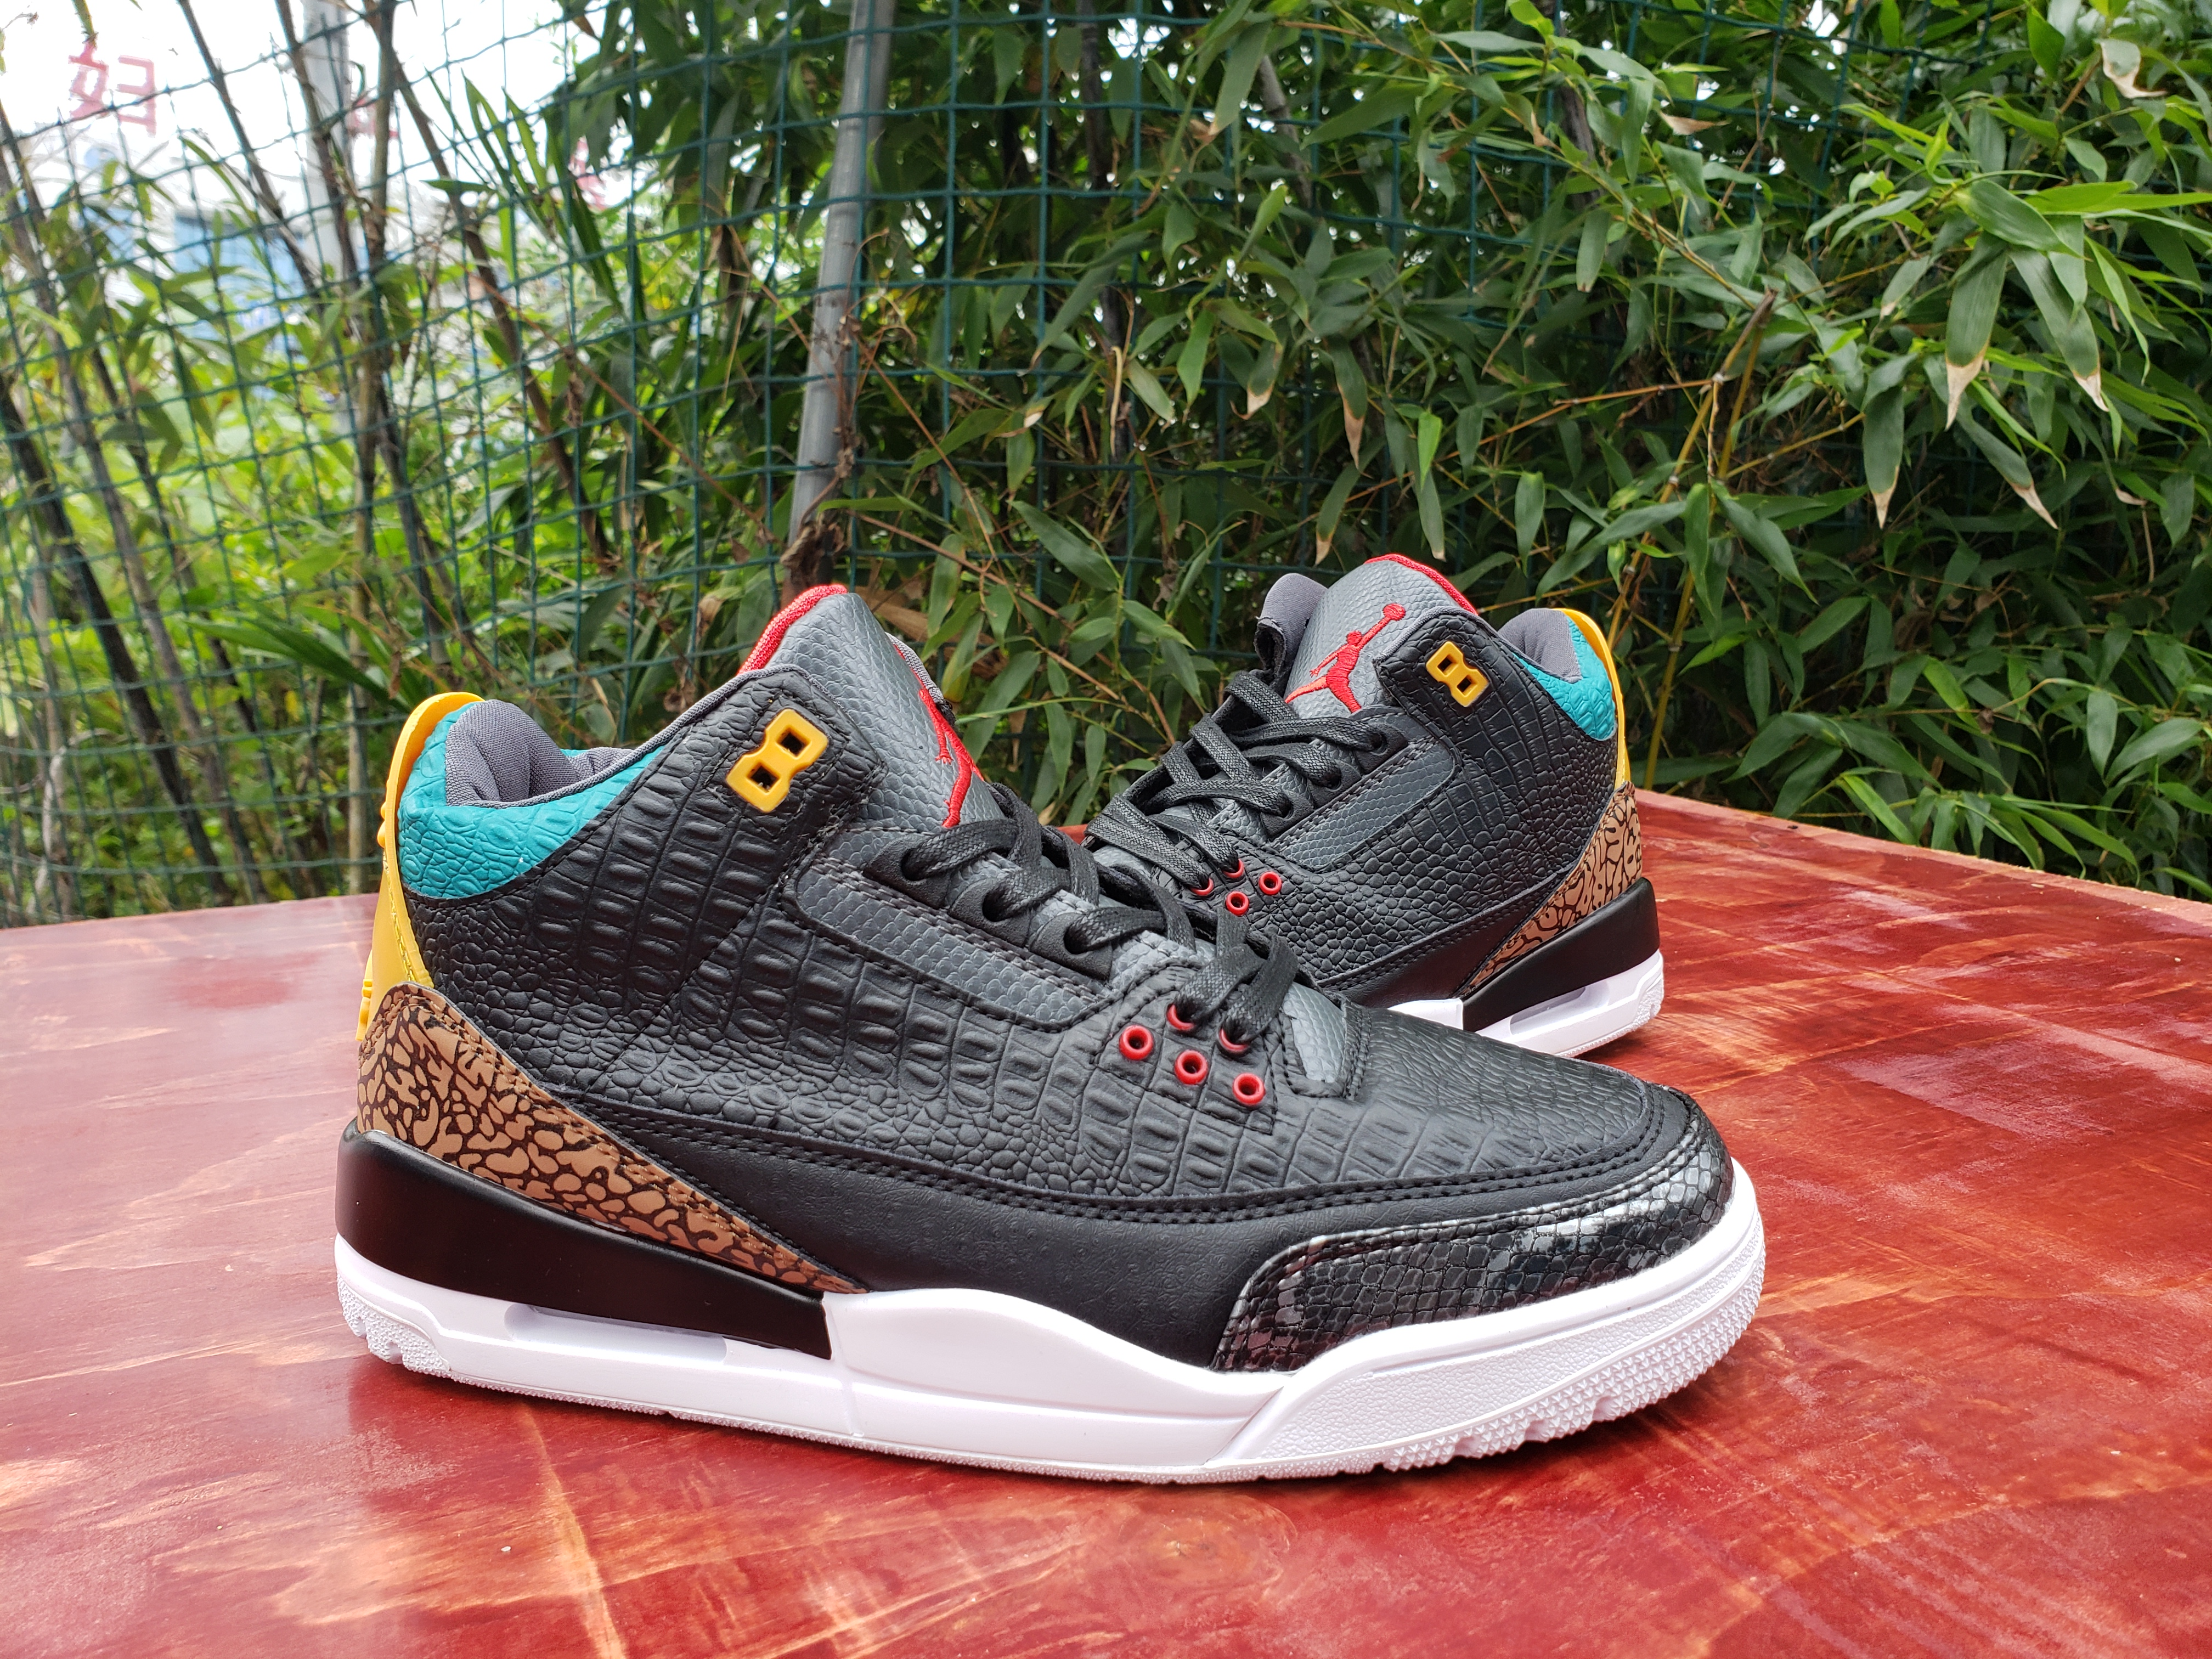 2020 Air Jordan 3 Retro Crocodile Black Red Yellow Blue Shoes